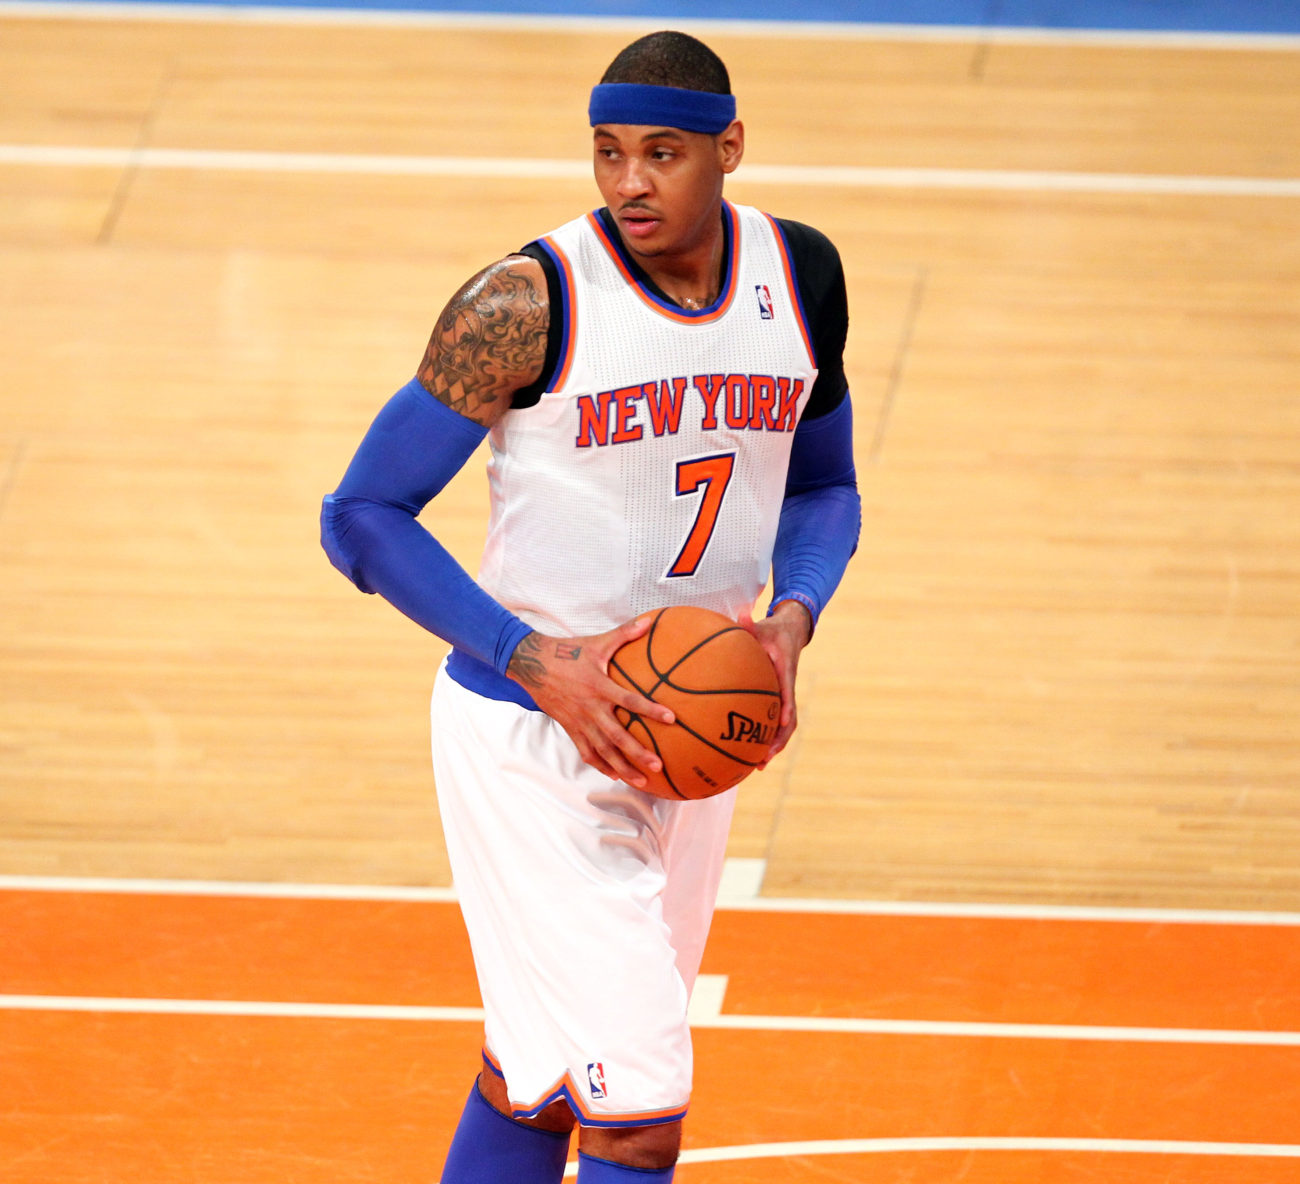 May 5, 2013; New York, NY, USA; New York Knicks forward Carmelo Anthony (7) carries the ball during the first half at Madison Square Garden. Mandatory Credit: Danny Wild-USA TODAY Sports